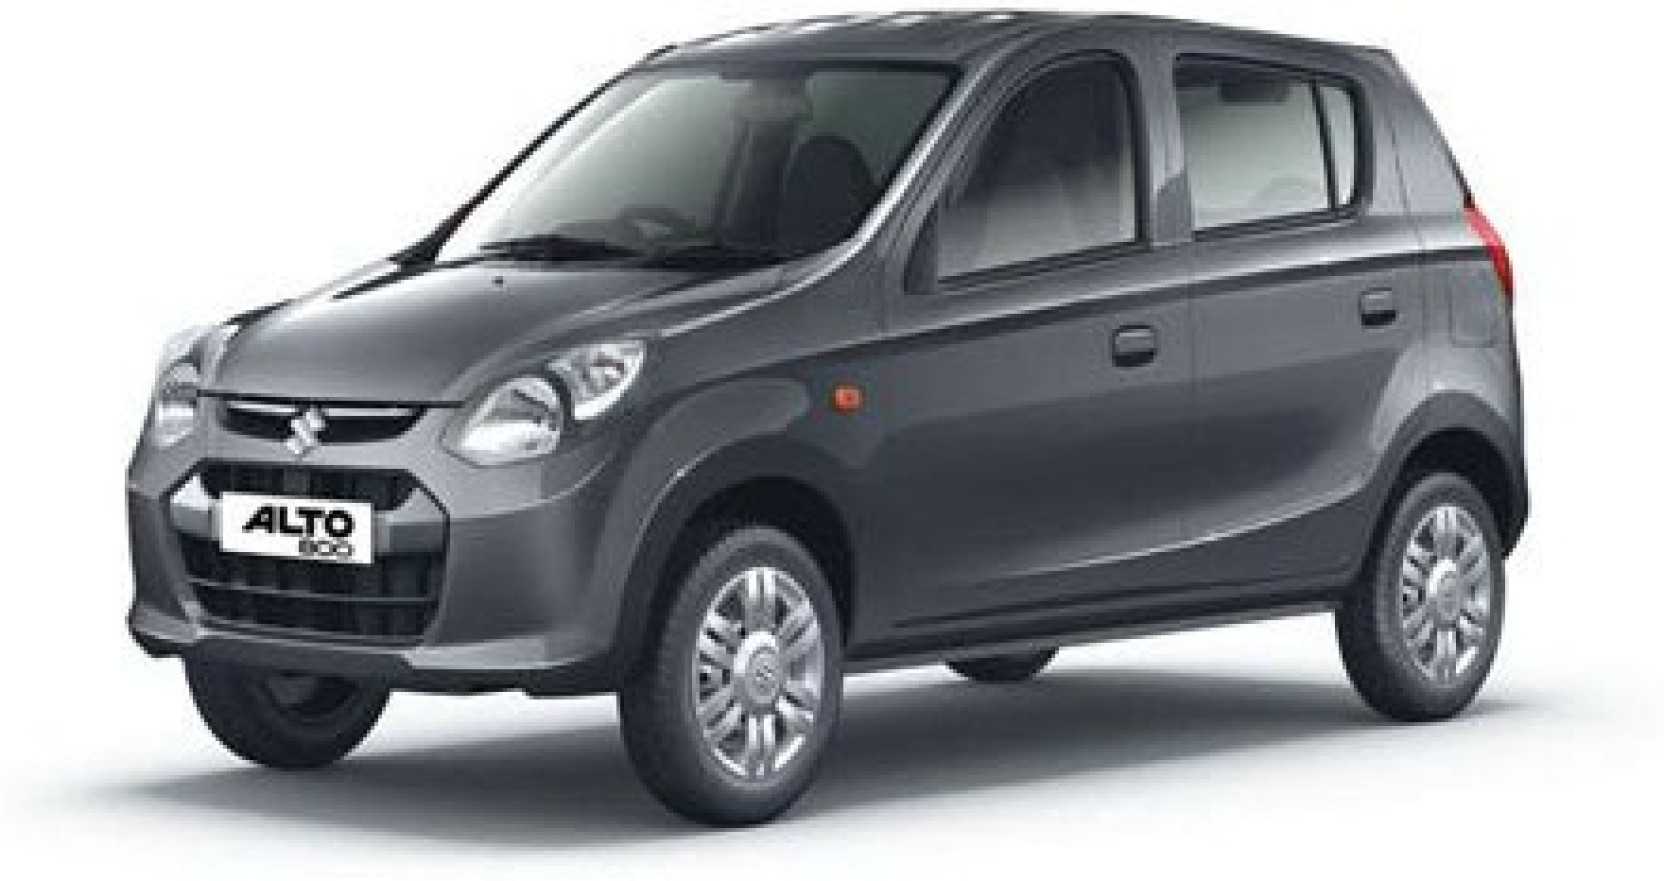 Maruti Suzuki Alto 800 Lxi with Air Bag (Ex-showroom price starting from Rs  3,48,738) (Book for Rs 10,000)